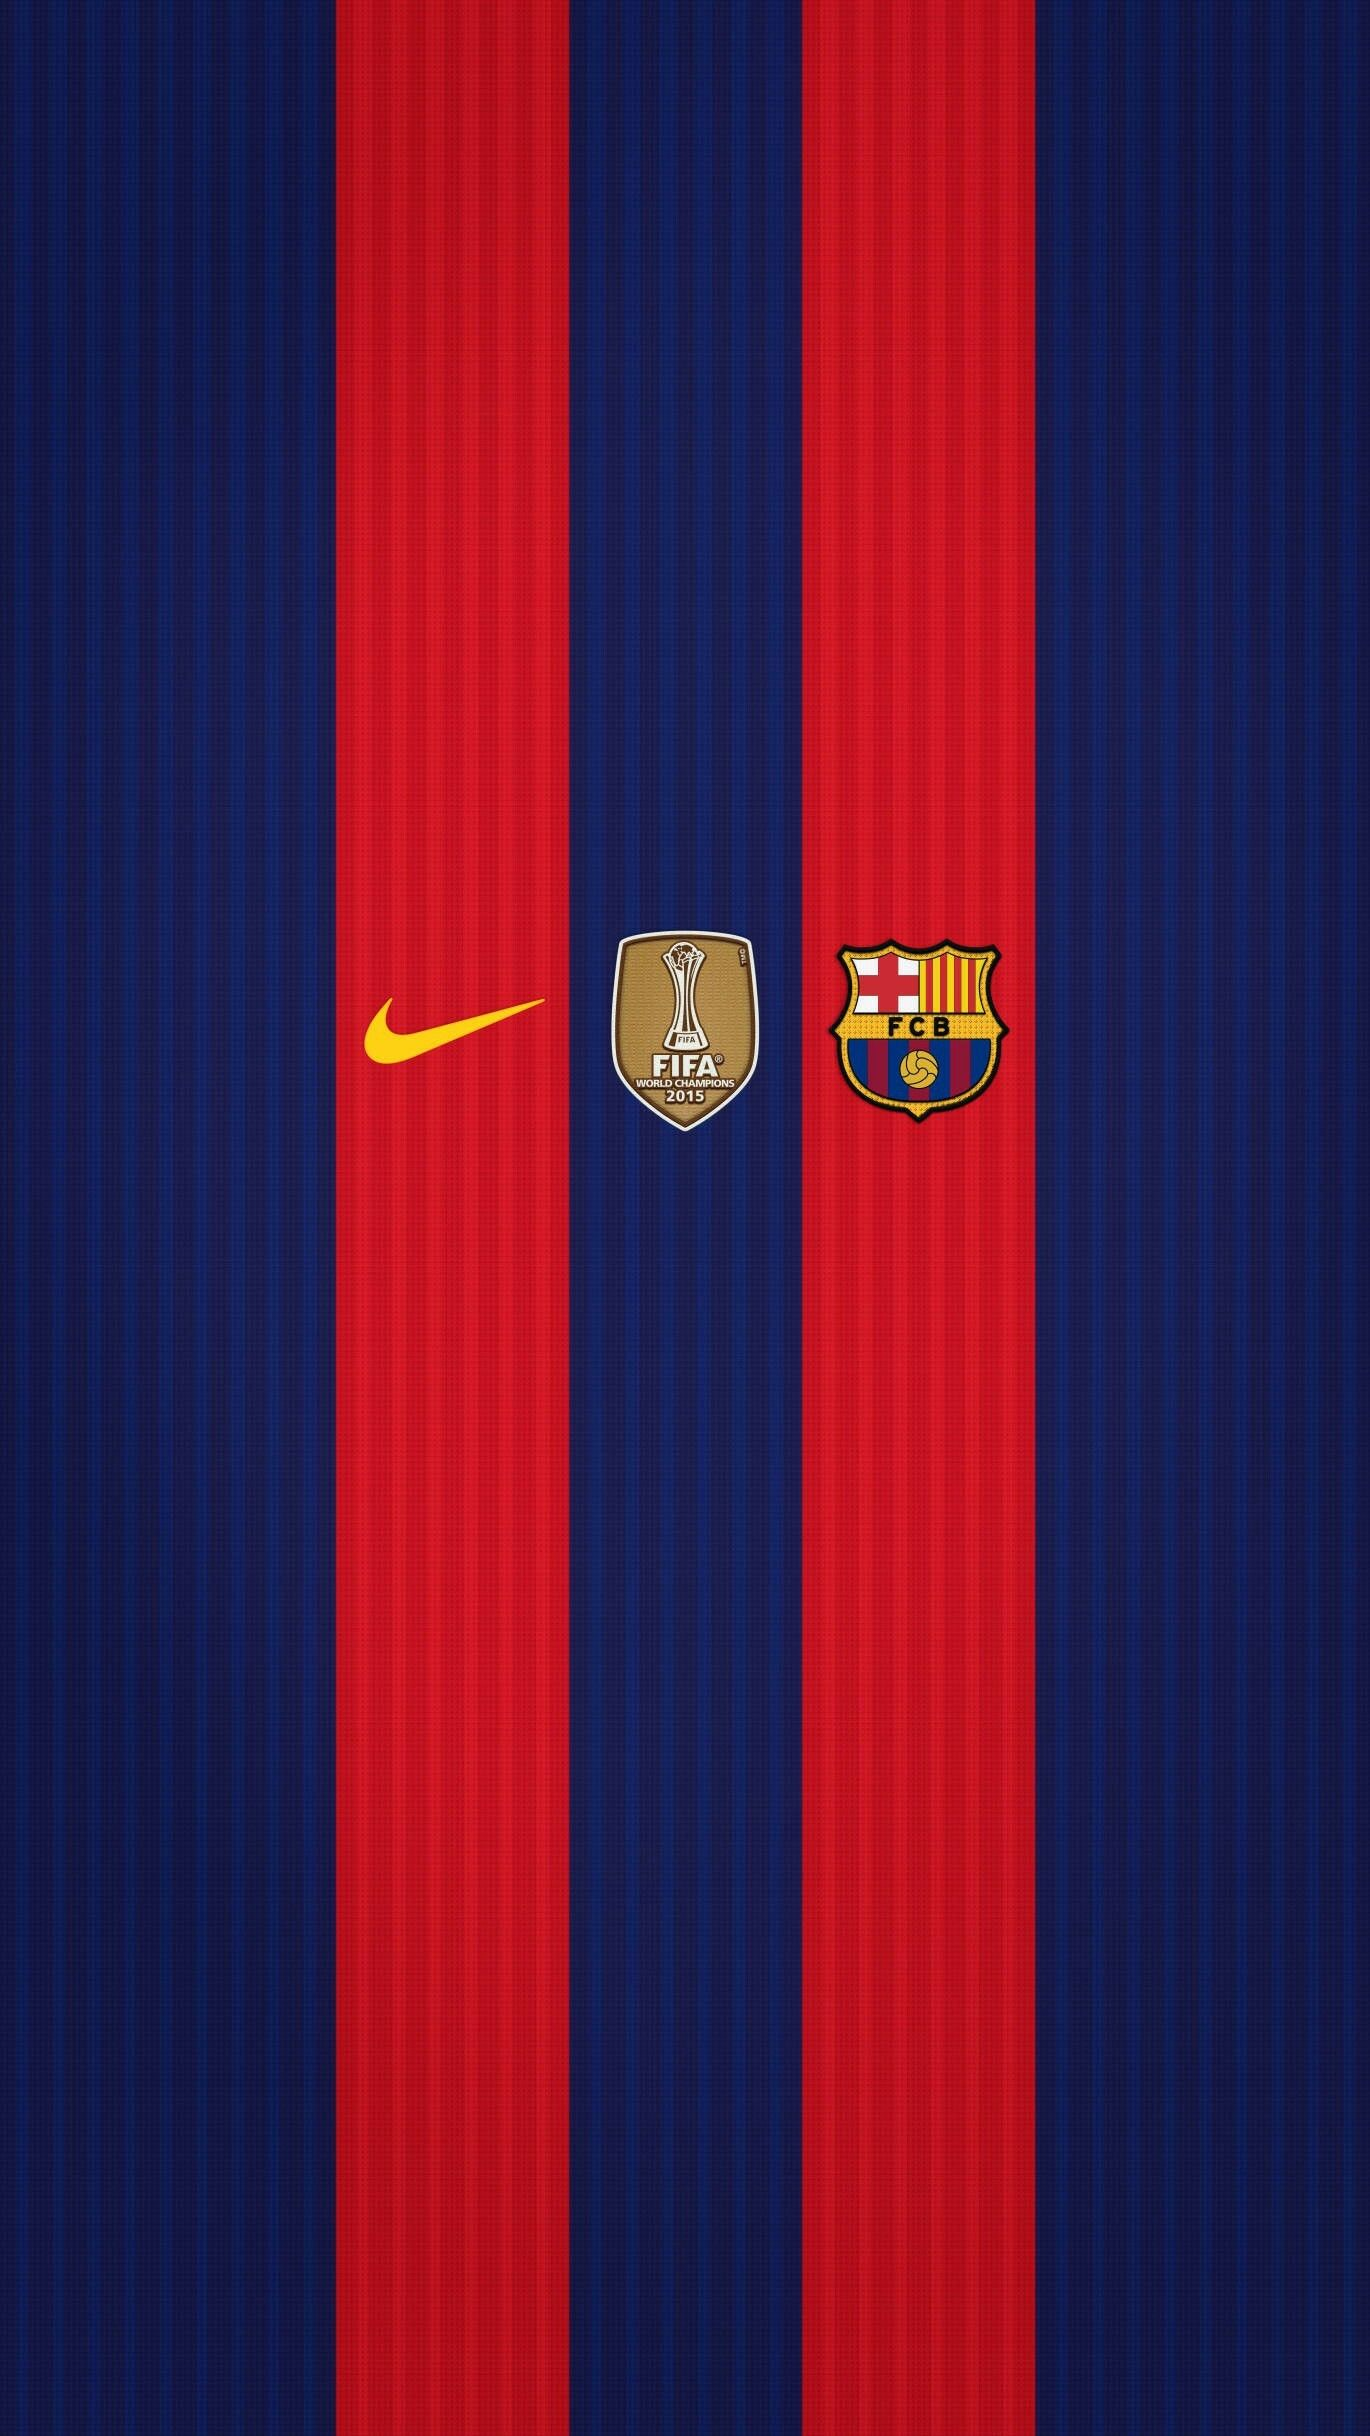 Fc Barcelona Iphone Wallpapers Top Free Fc Barcelona Iphone Backgrounds Wallpaperaccess